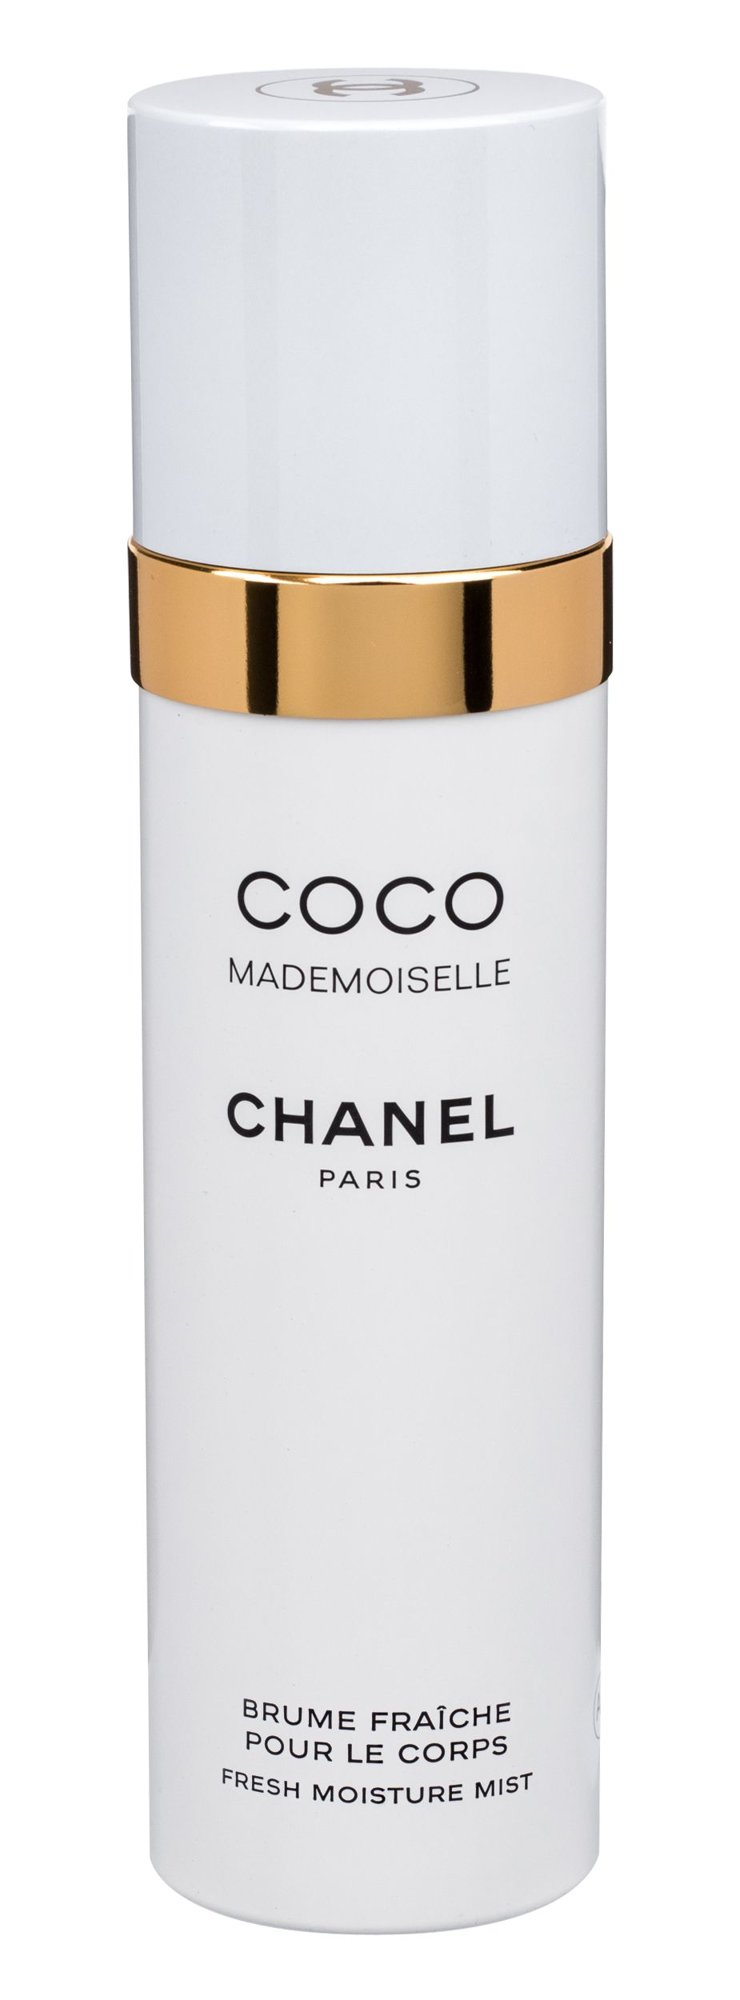 Chanel Coco Mademoiselle Body veil 100ml